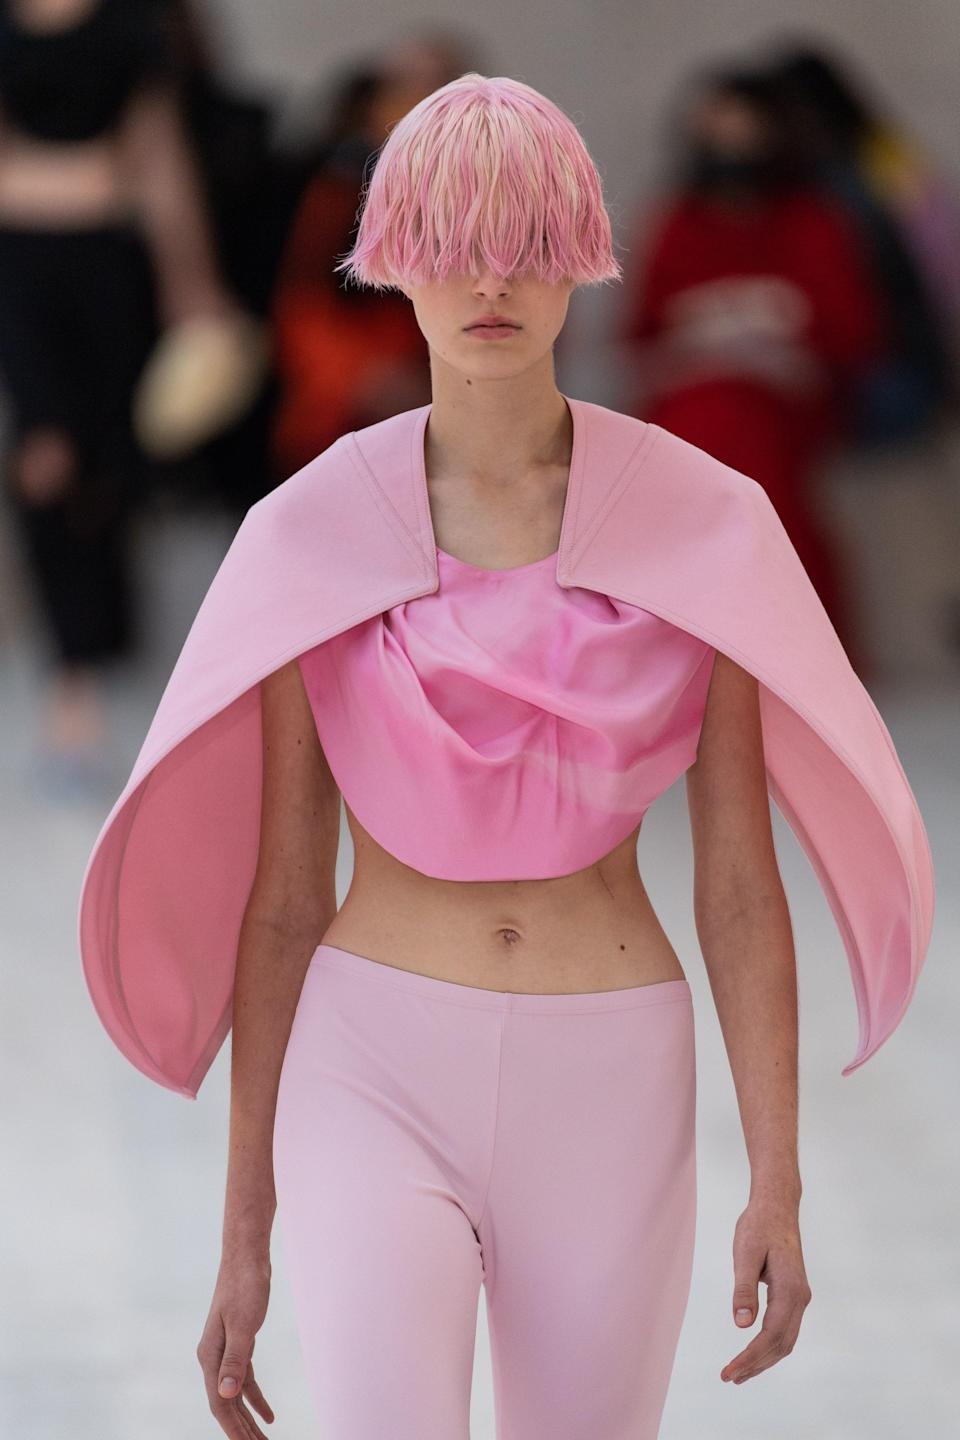 <p>Paris Fashion Week is closing out a month-long fashion fête, and we're bringing you the top looks we love from each collection. Click through to see Loewe channel <em>The Fifth Element</em>, Dior's knockout presentation, and more from the fashion capital of the world, here. </p>